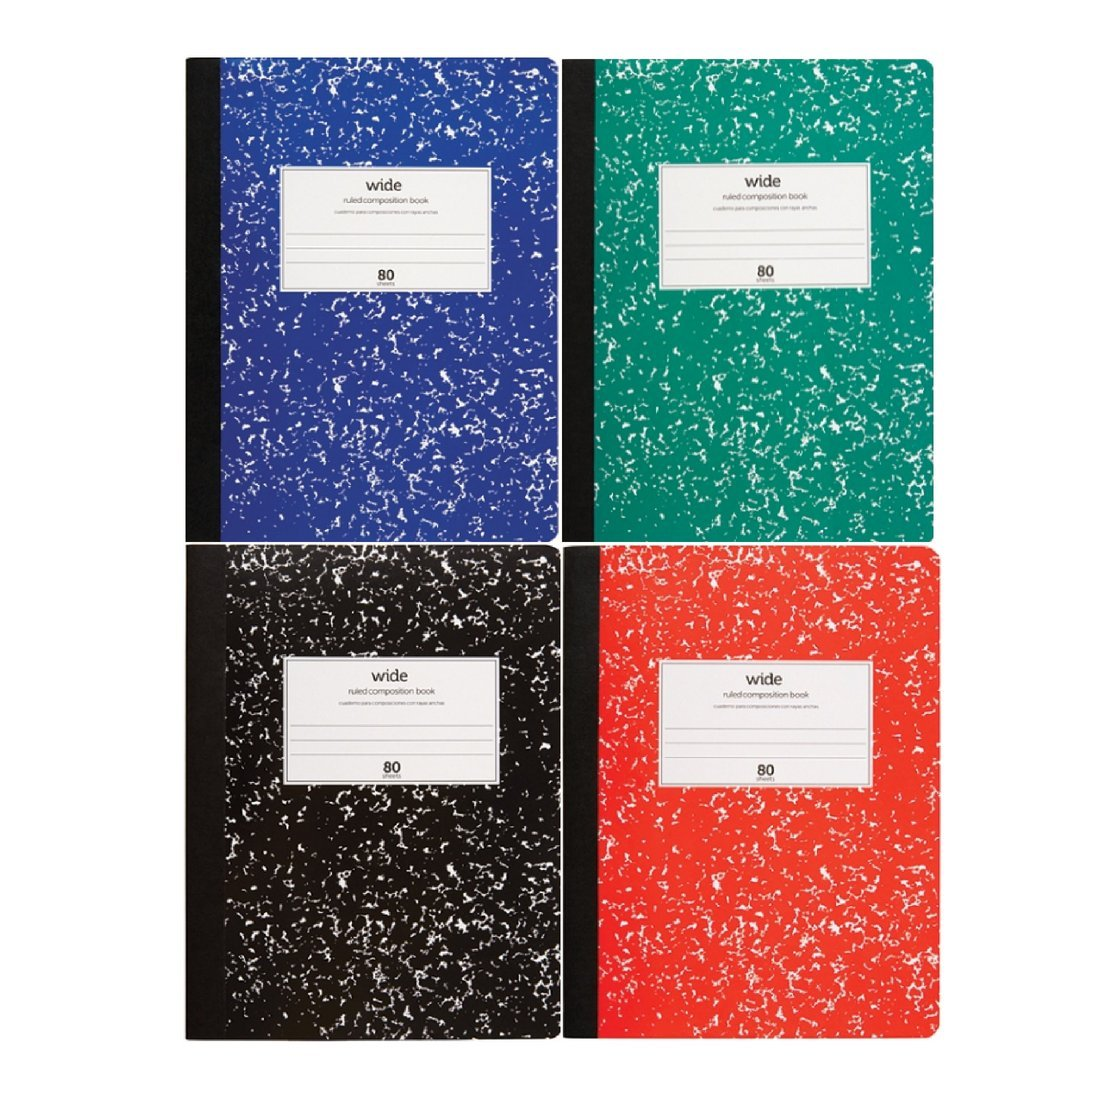 Office Depot Wide Ruled Composition Books 80 Sheets Set of 4 Blue Green Red Black